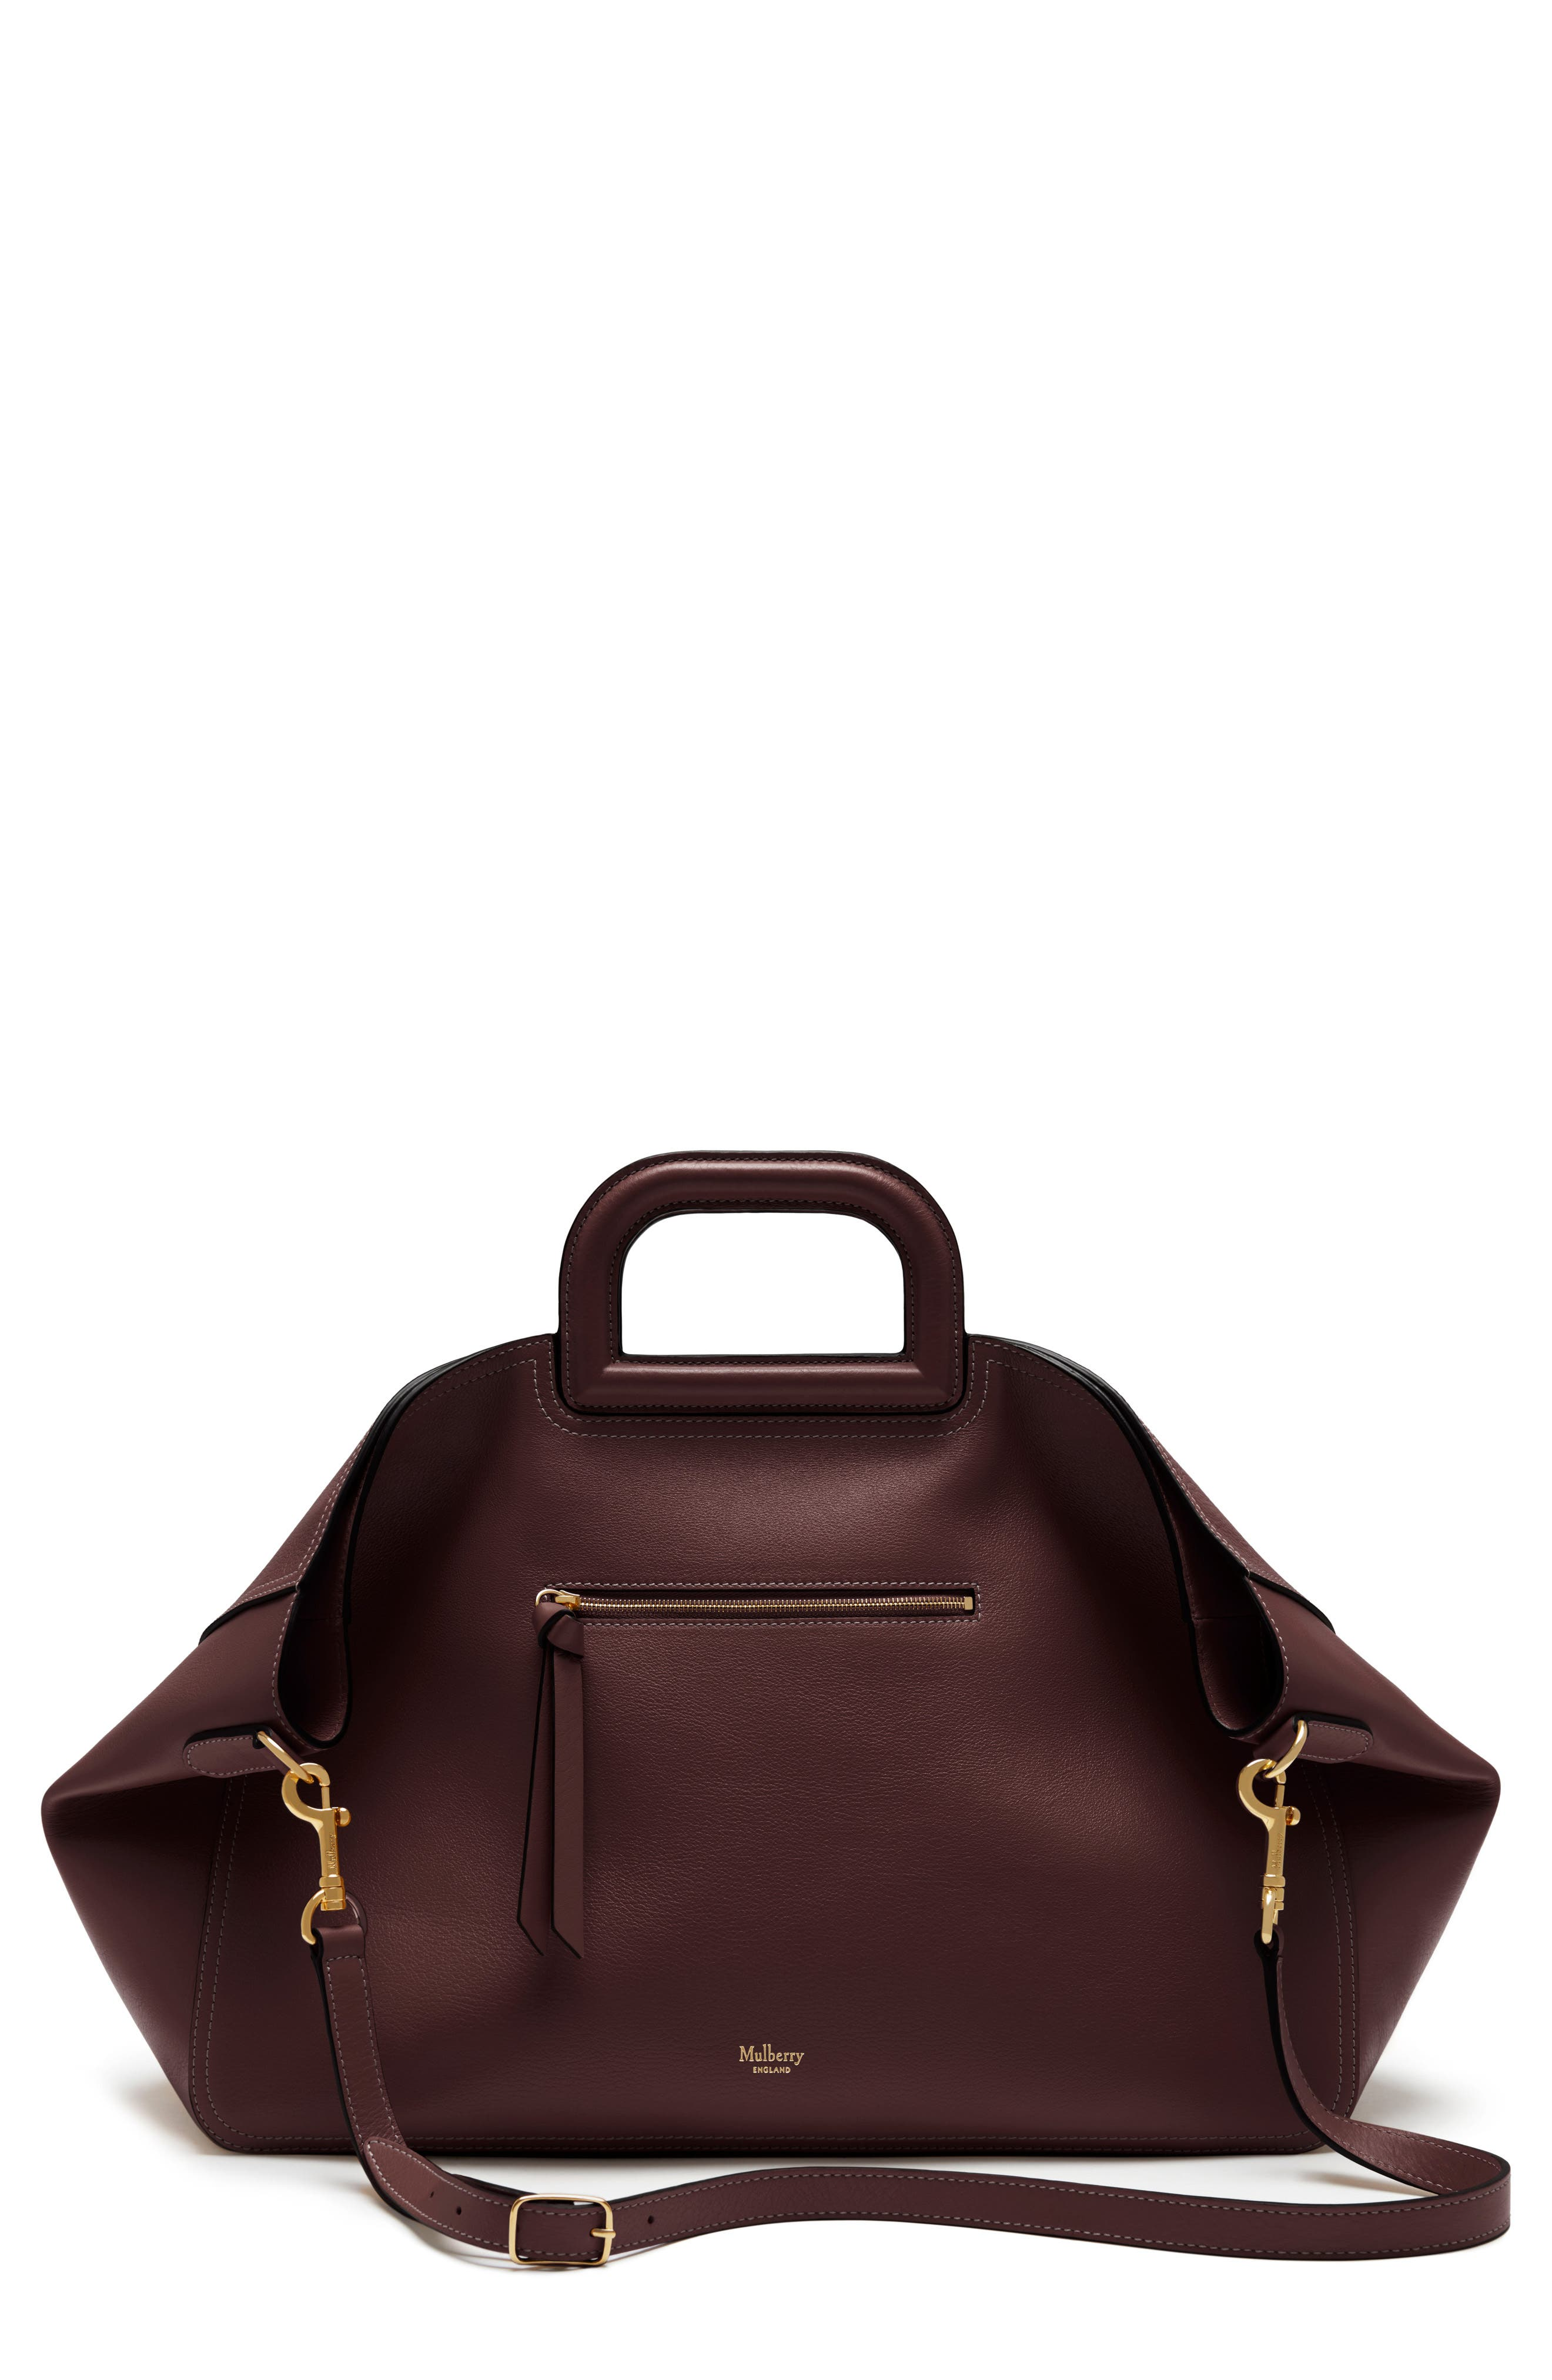 Mulberry Brimley Leather Satchel